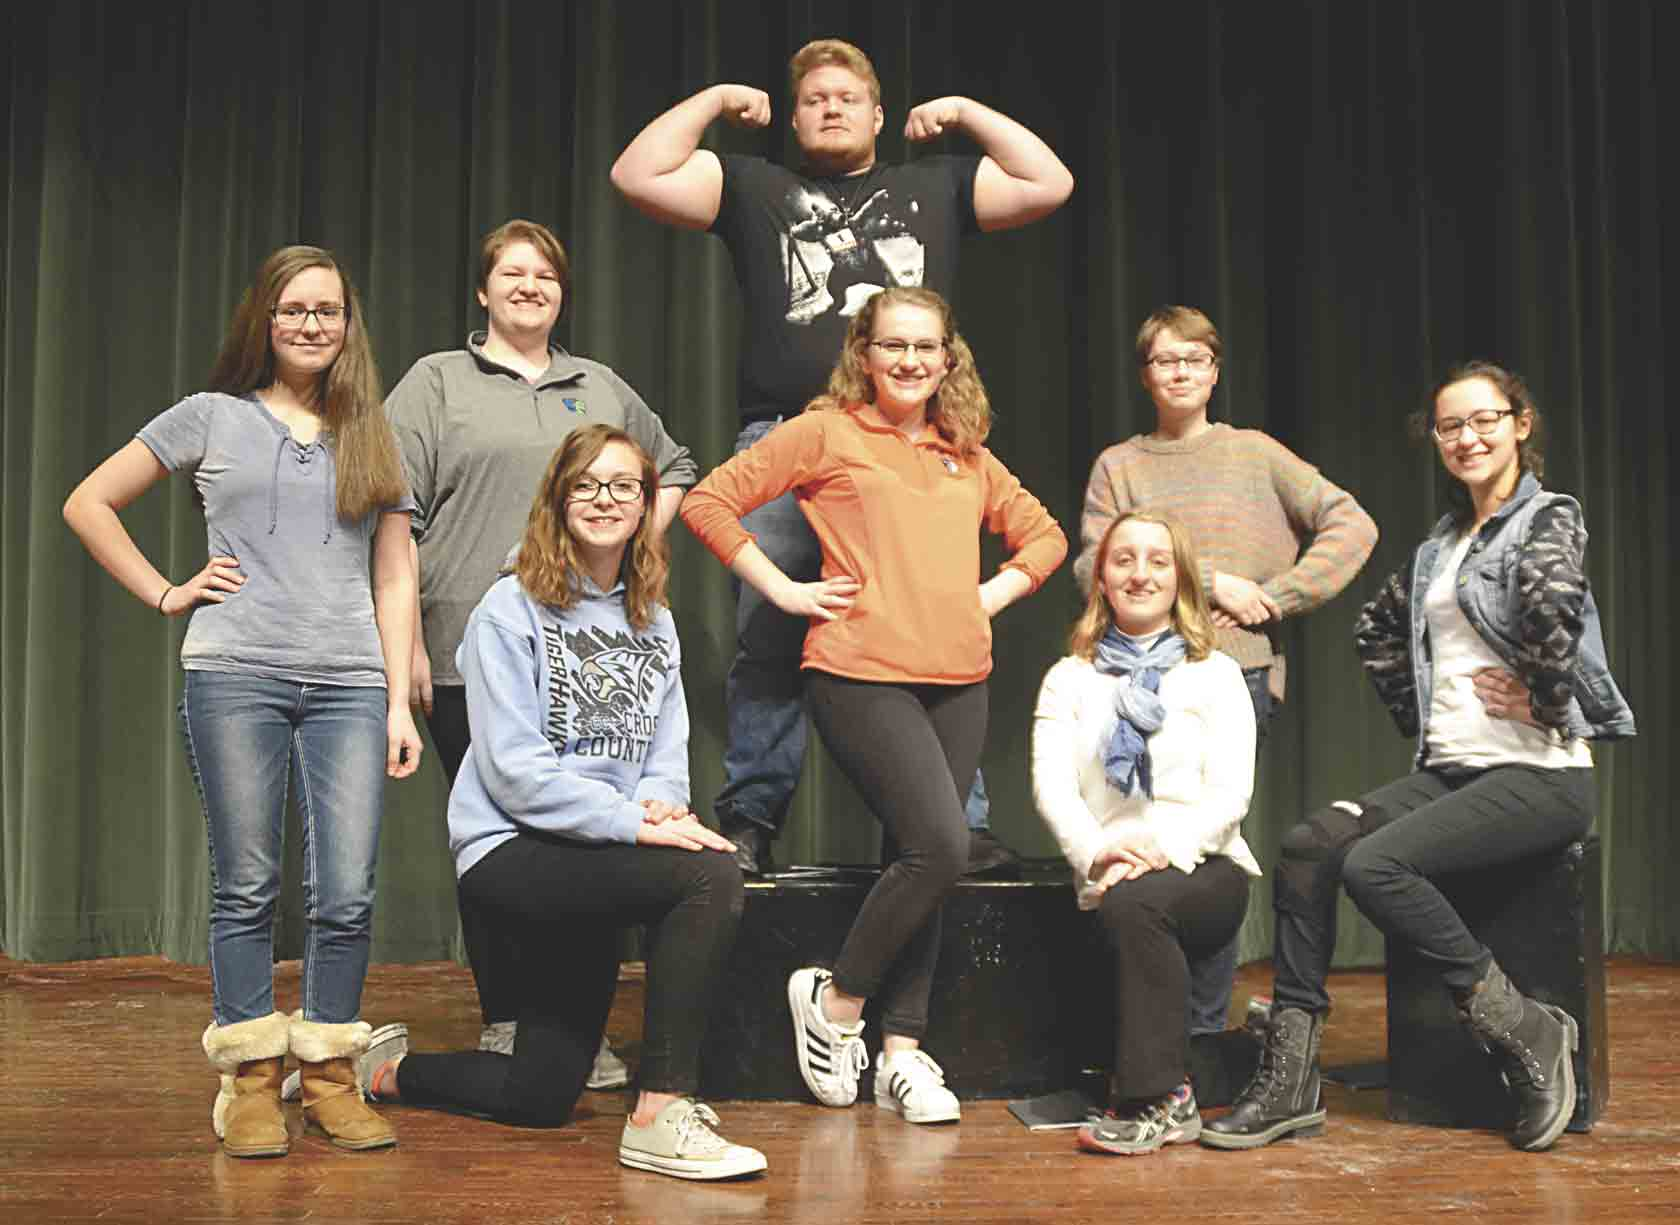 The North Fayette Valley Large Group Speech Team recently earned a Division I rating in Ensemble Acting, Readers Theatre, and Short Film at the Iowa High School Speech Association Northeast State Contest in Decorah. The Readers Theatre Team performed its skit for the NFV student body...